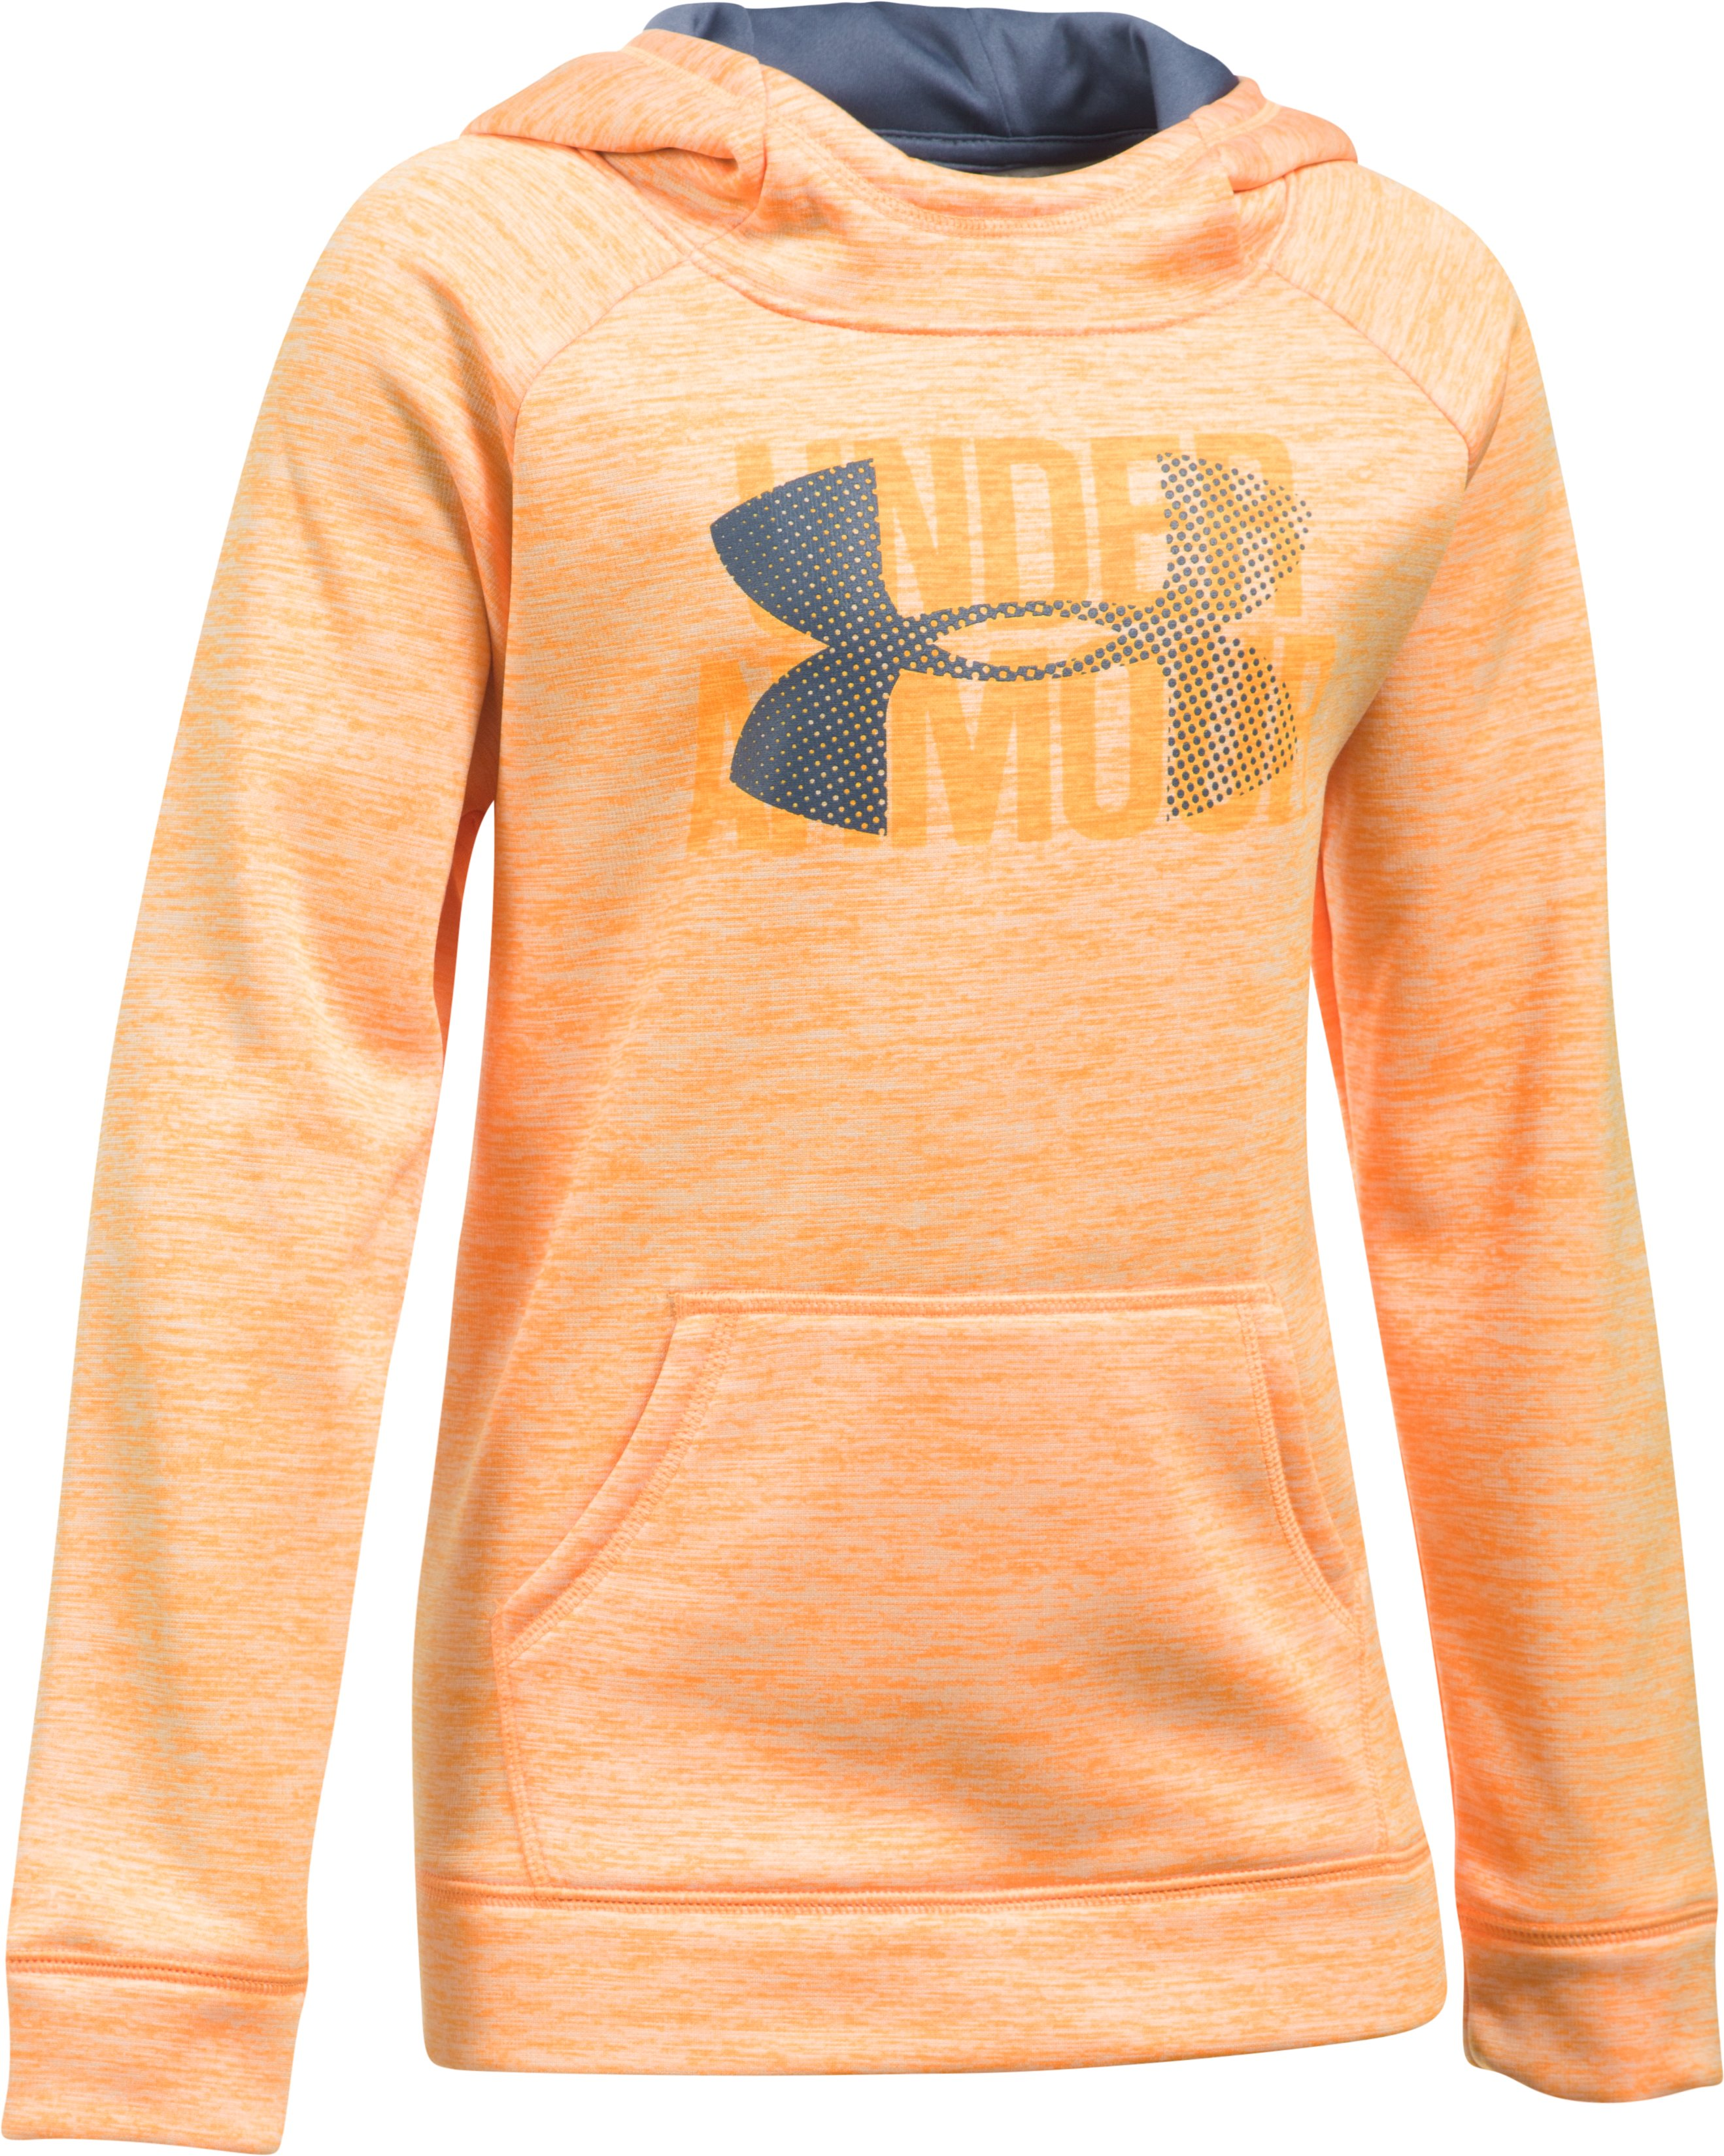 printed hoody Girls' Armour Fleece® Big Logo Printed Hoodie Great Sweatshirt...Great fit!!...Love Underarmour...and pink!